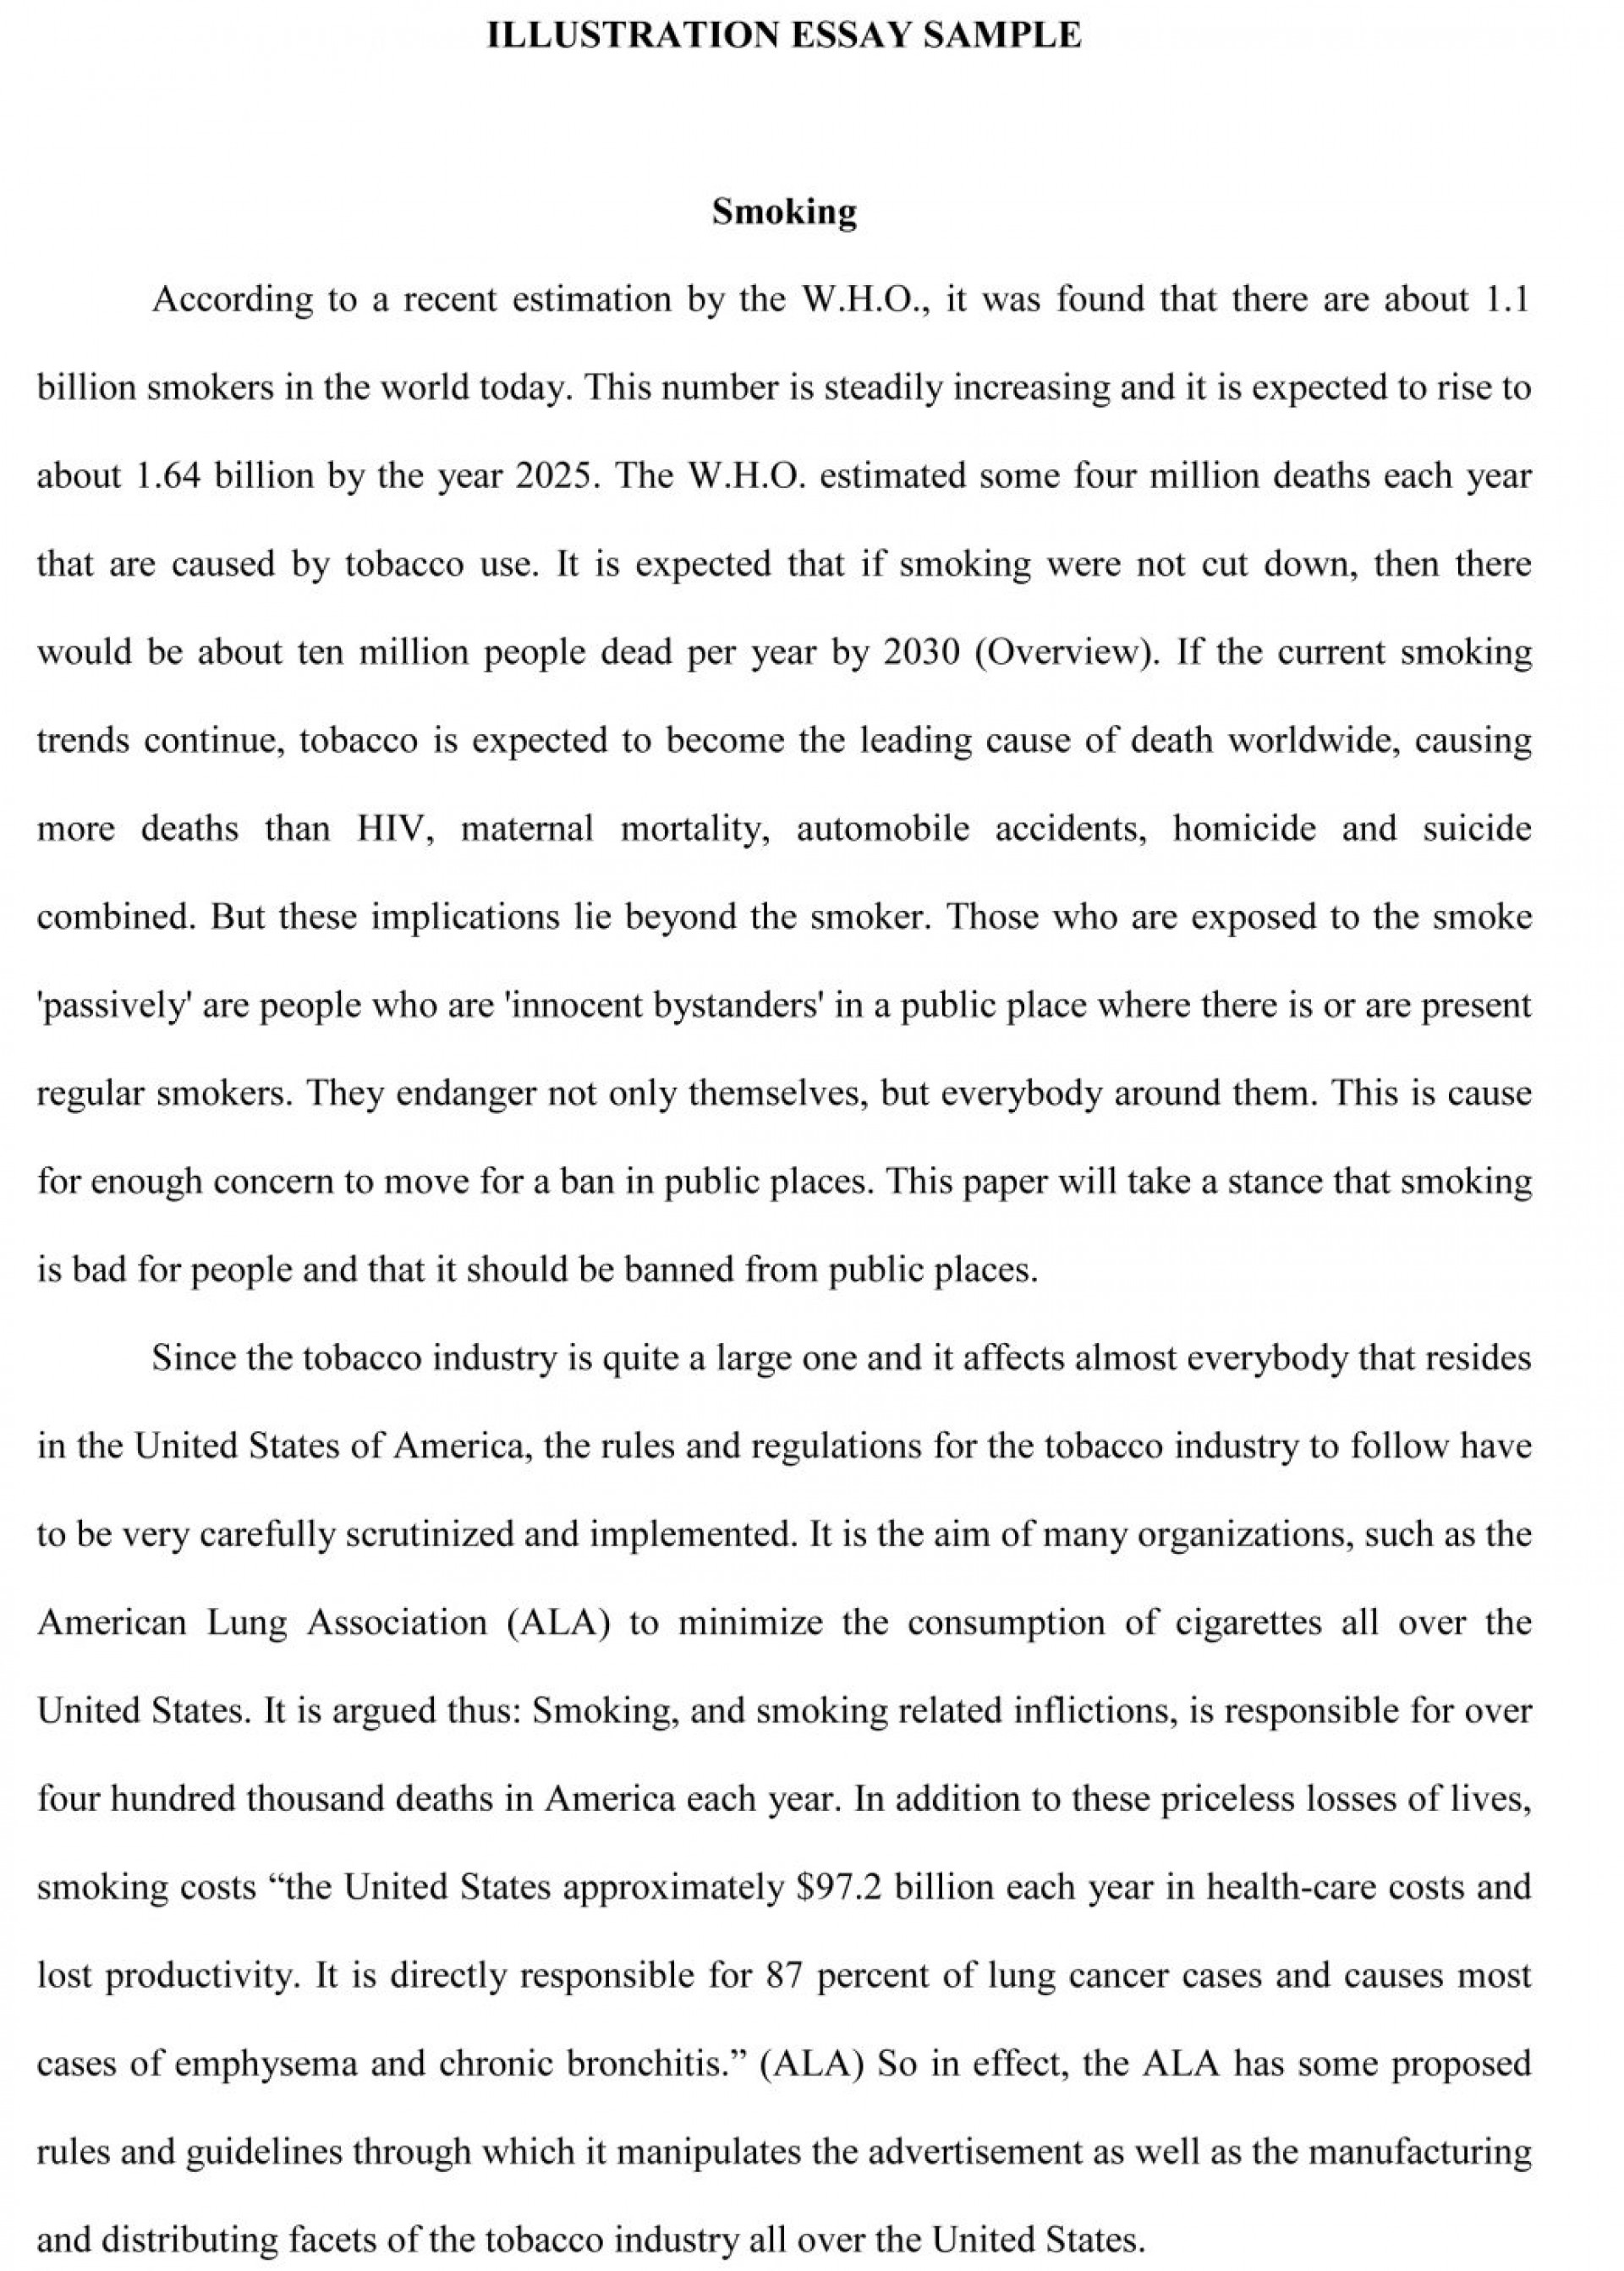 how to write memoir essay example cs writing about free time y    how to write memoir essay sample essays example of college  illustrat impressive a an introduction